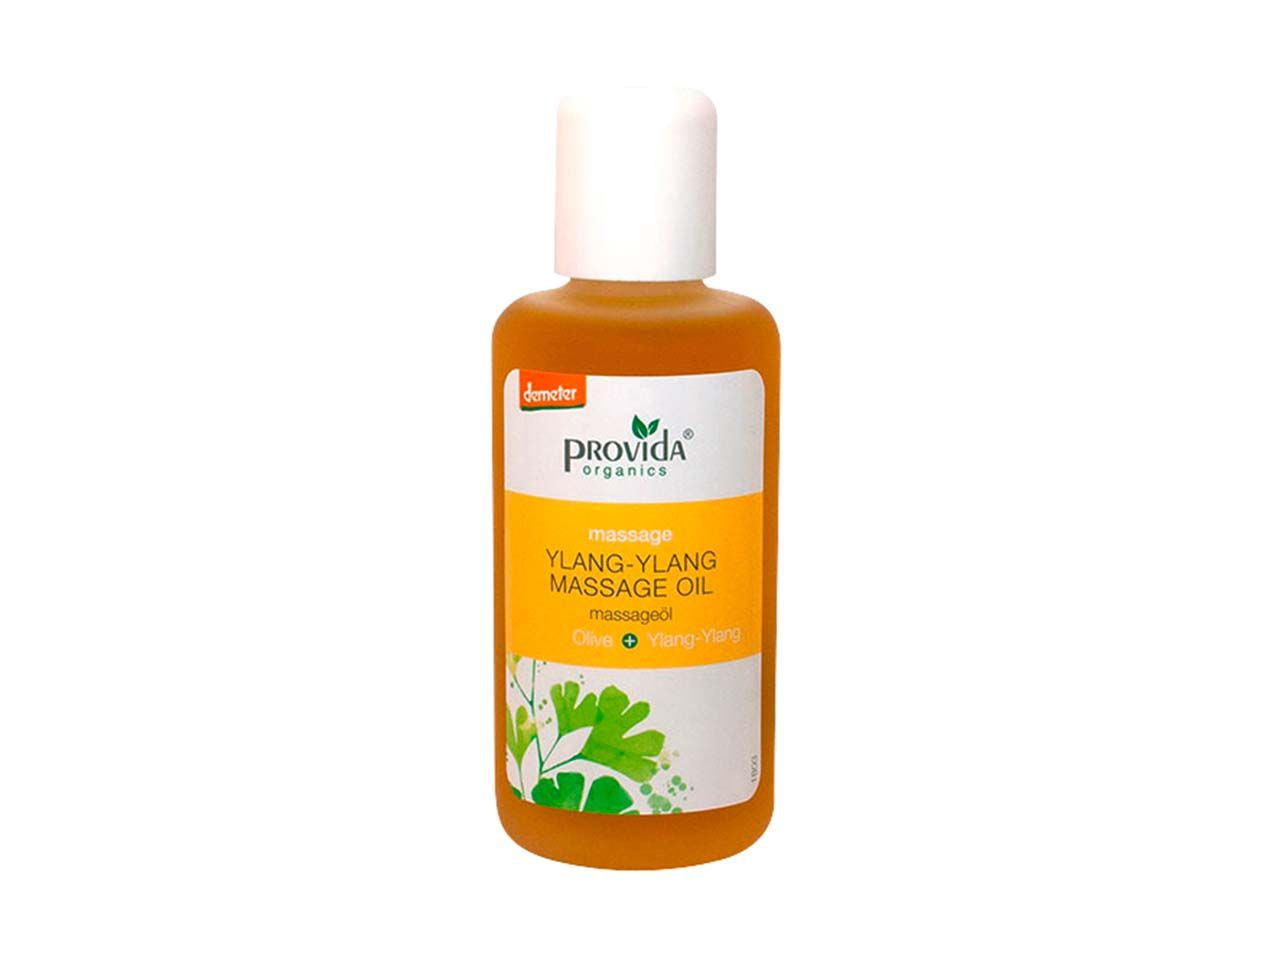 Provida Massageöl Ylang-Ylang 150 ml 1803